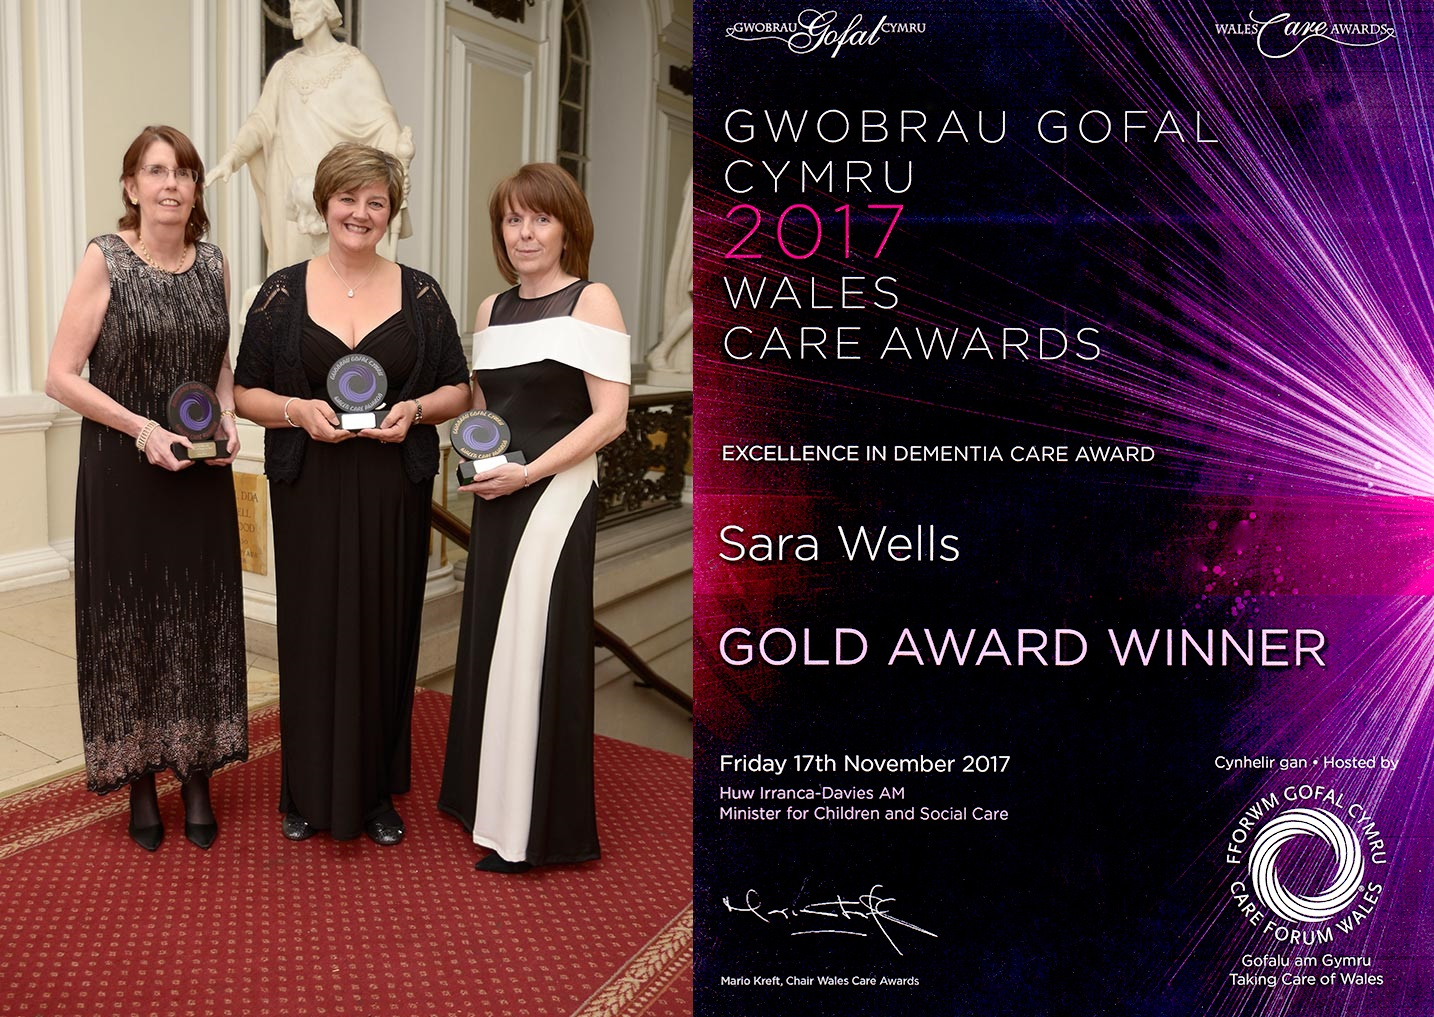 Award winning care support workers in Dementia Care